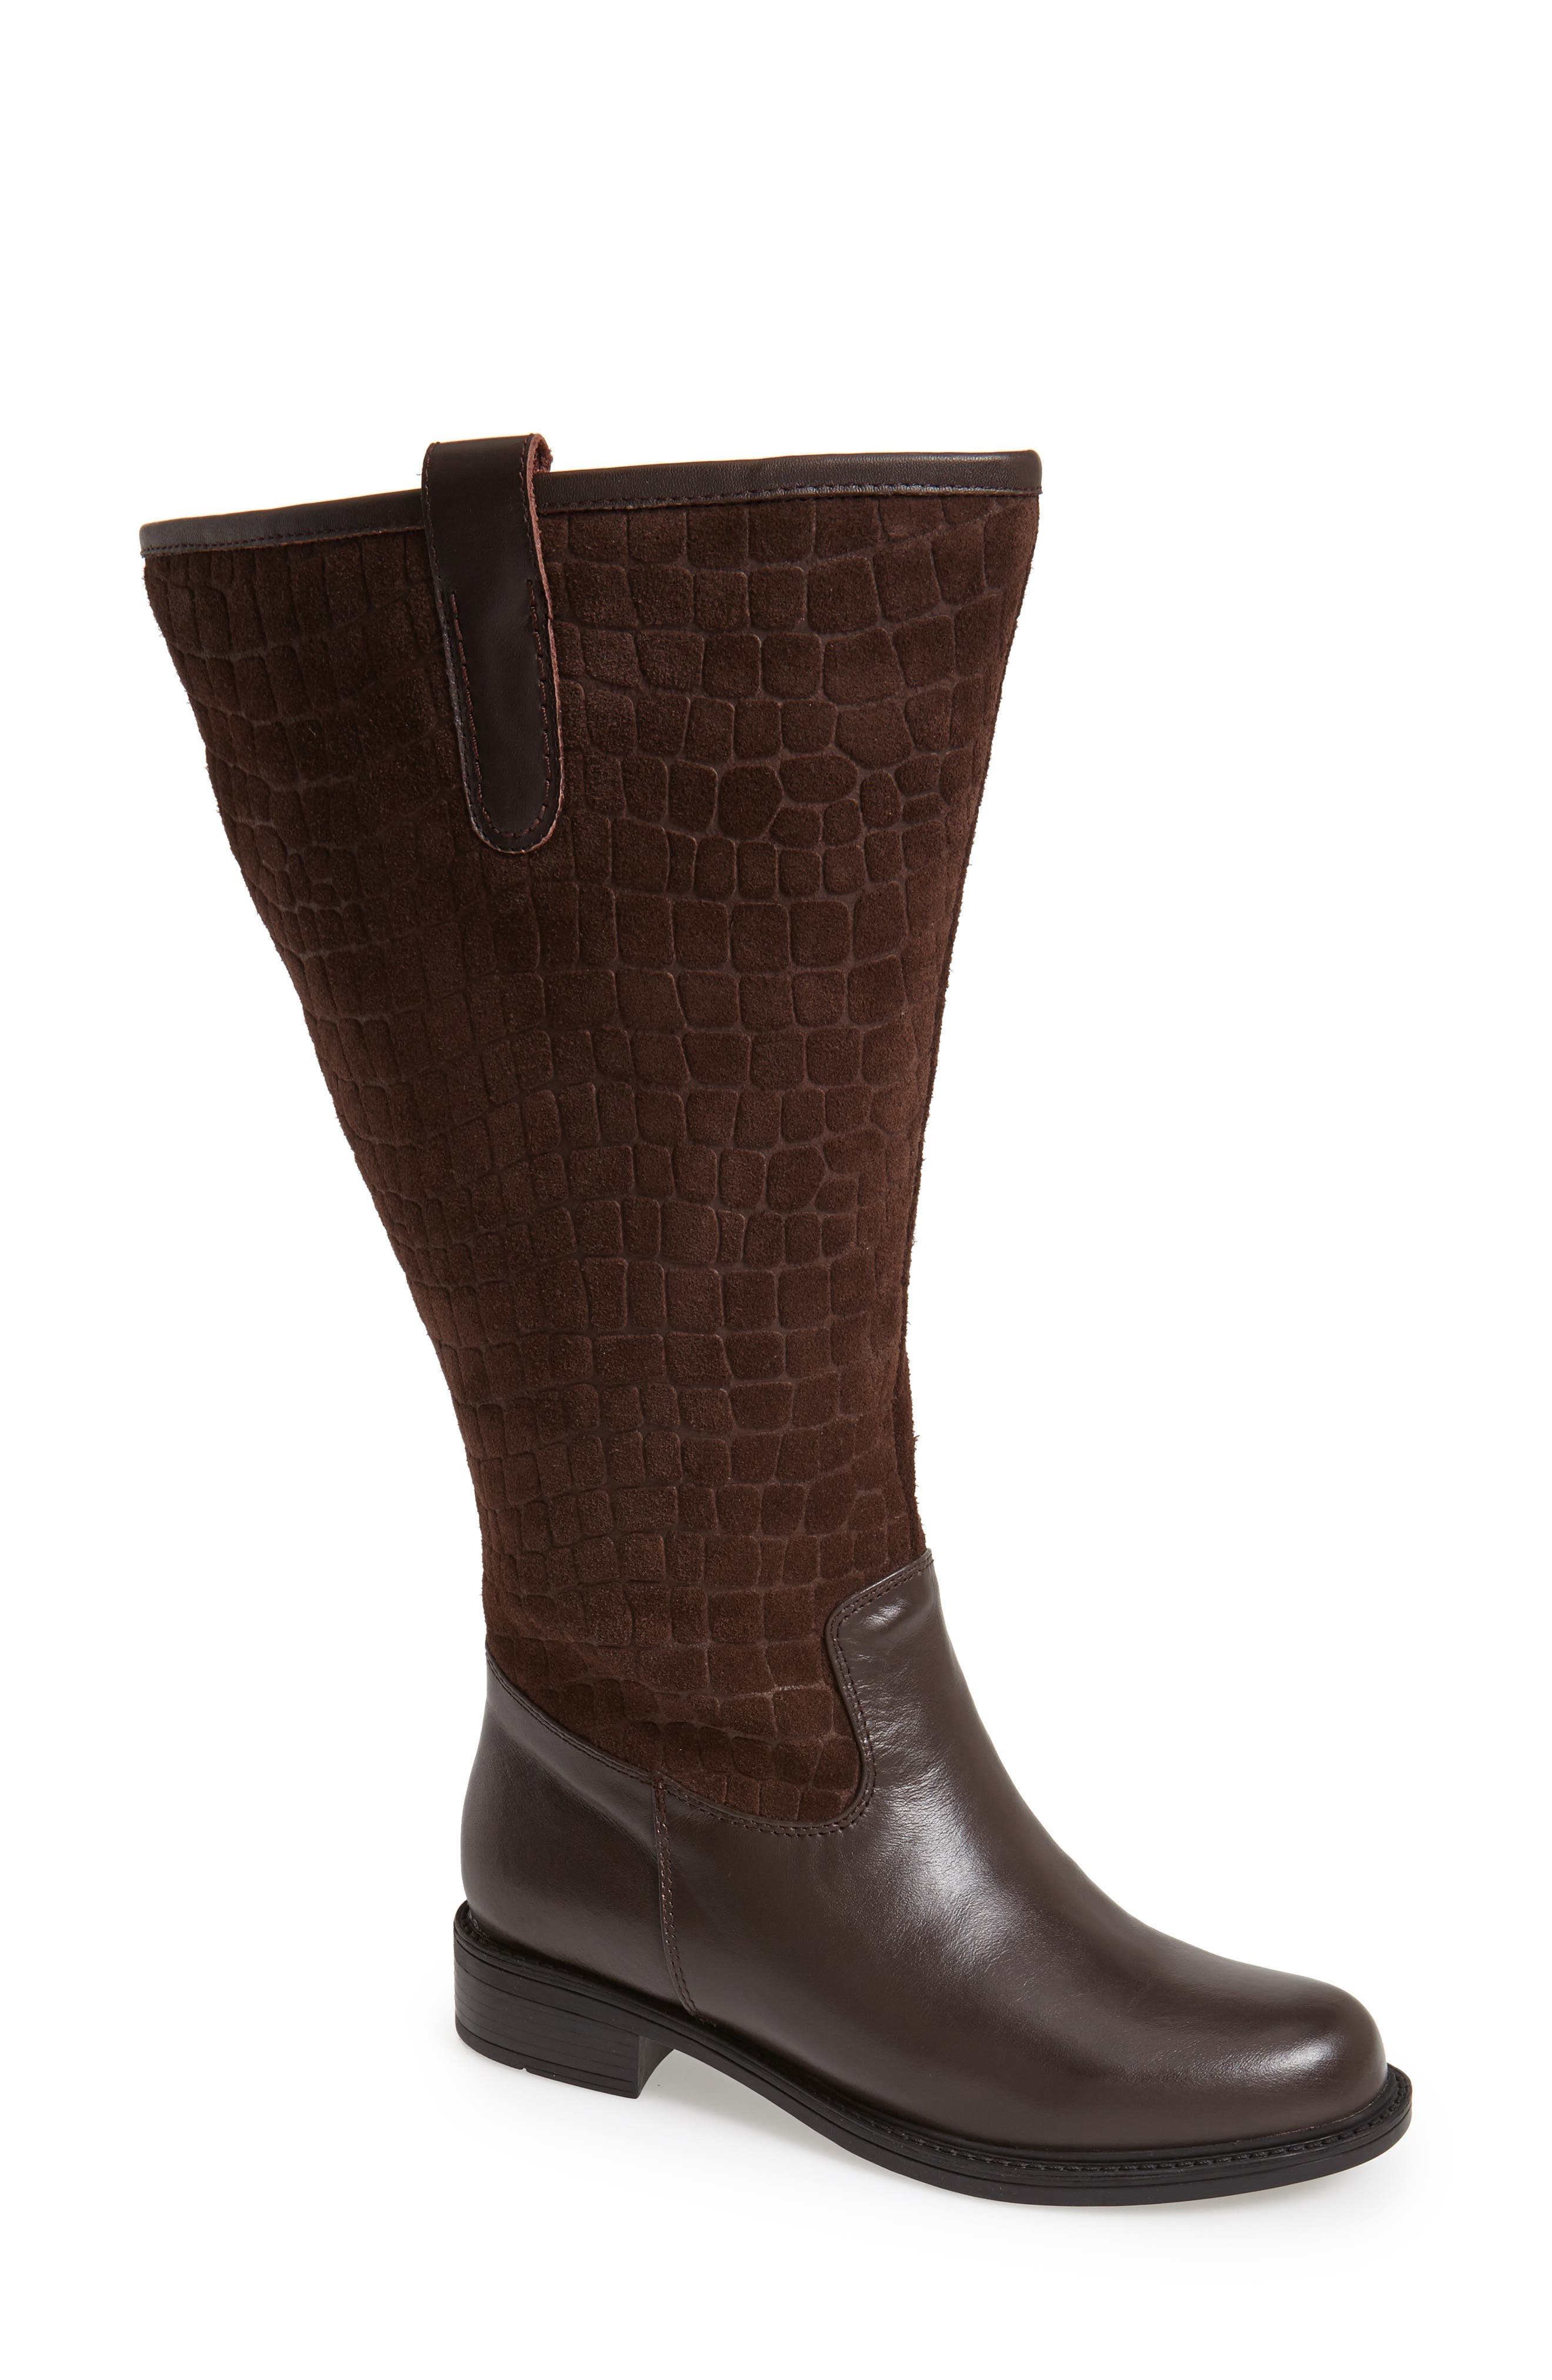 'Best' Calfskin Leather & Suede Boot,                             Alternate thumbnail 10, color,